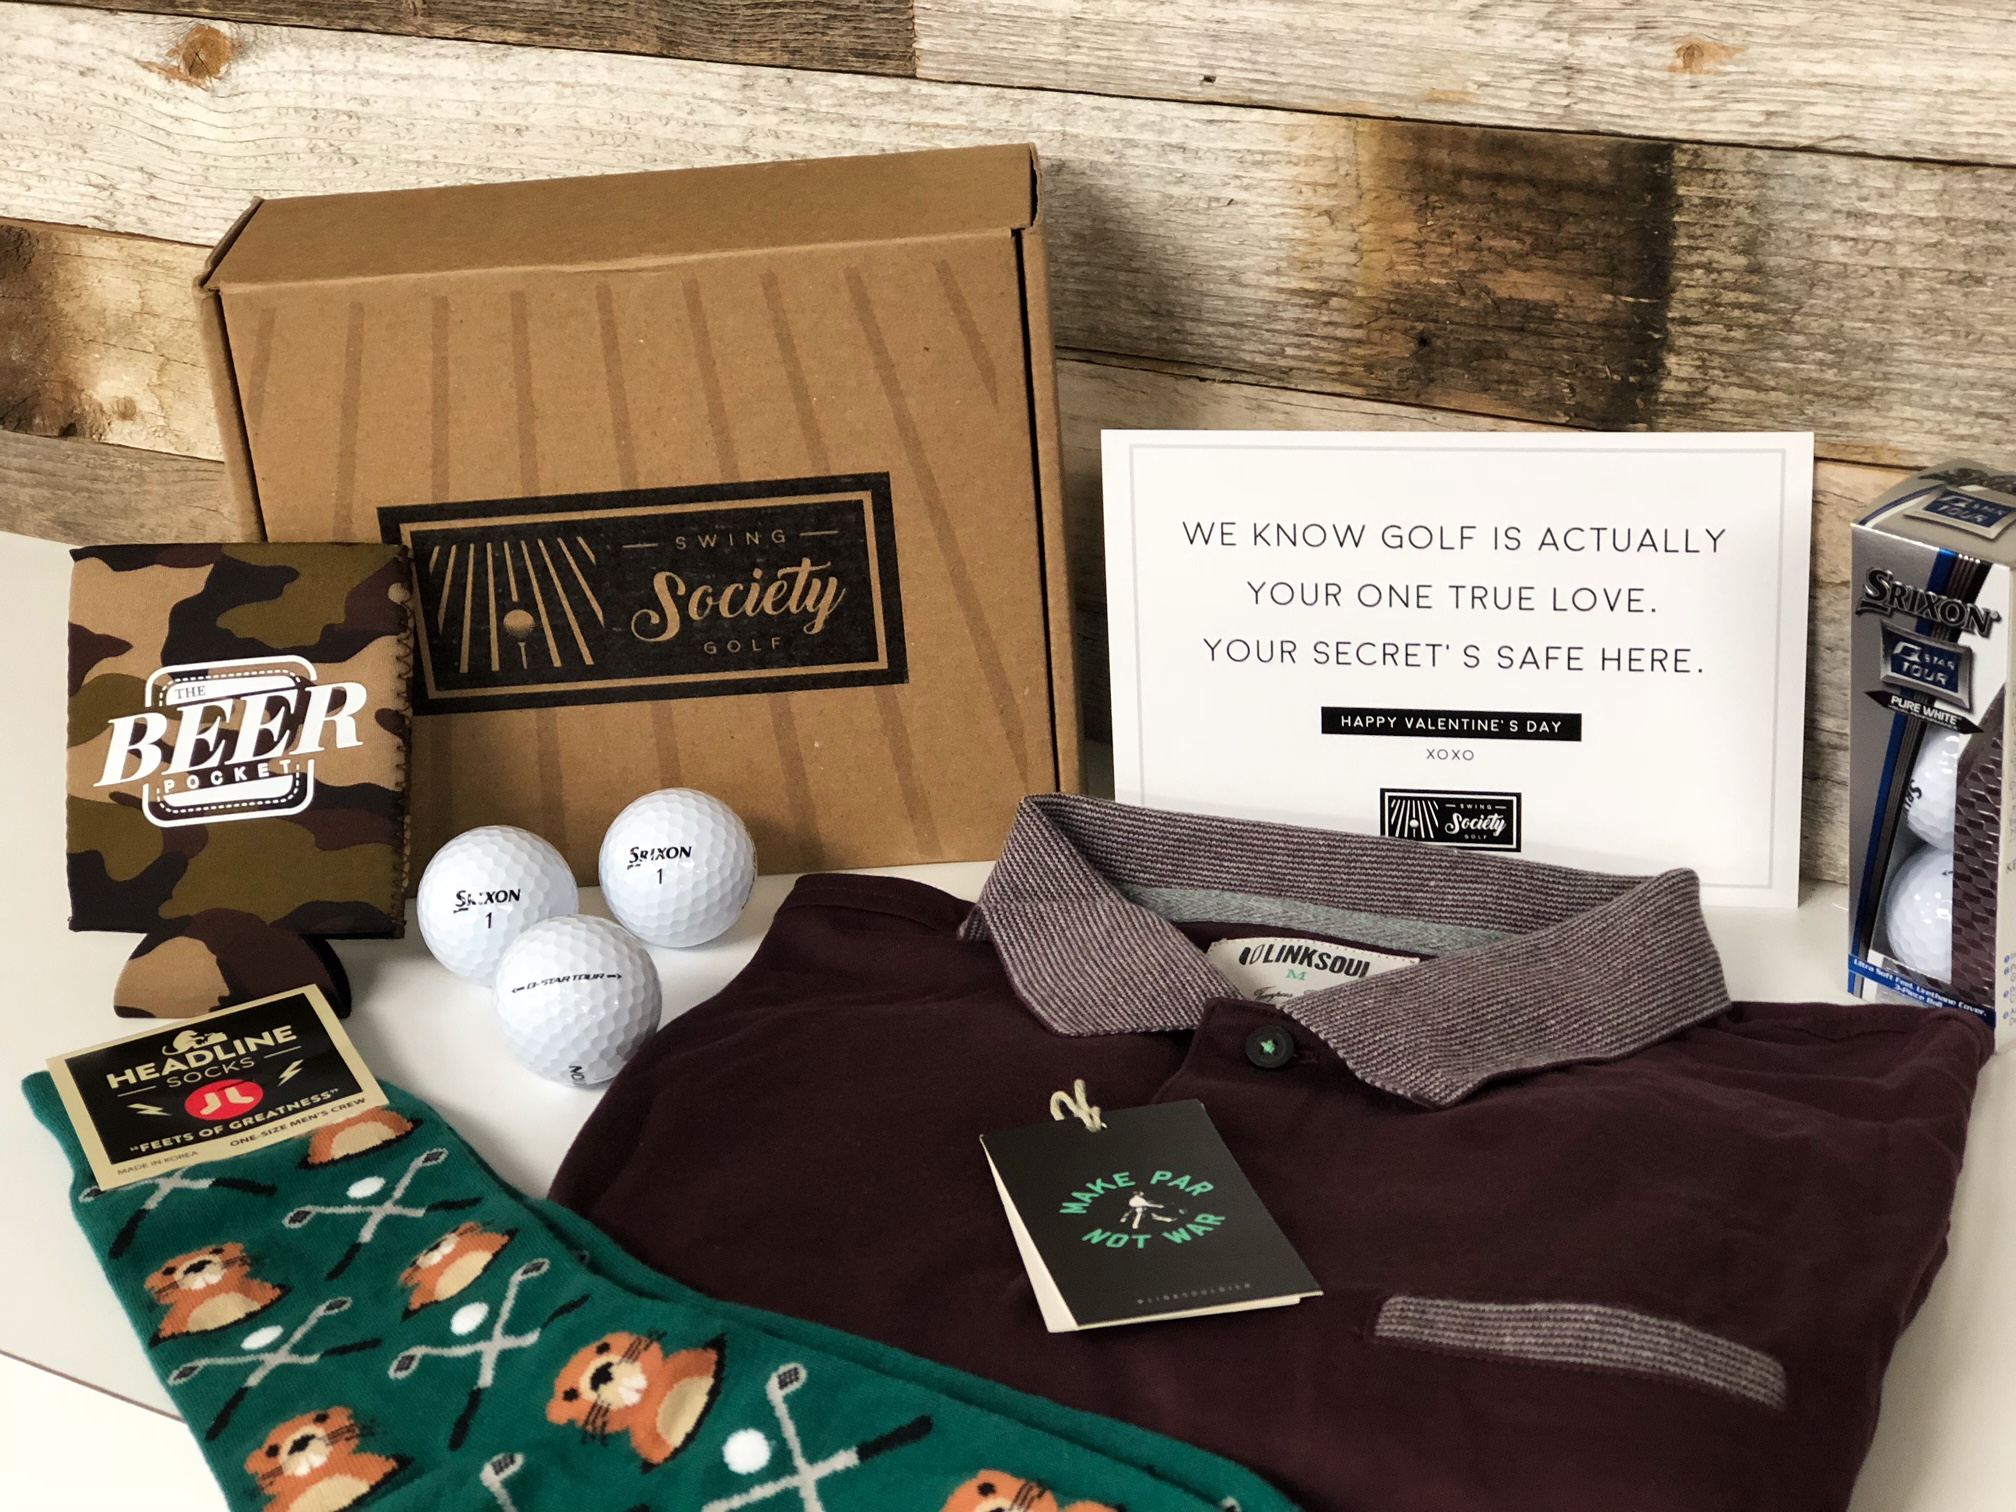 CONTENTS:   linksoul polo [$70]  gophers & golfers socks [$12]  srixon golf balls [$7.50]  the beer pocket koozie [$4]